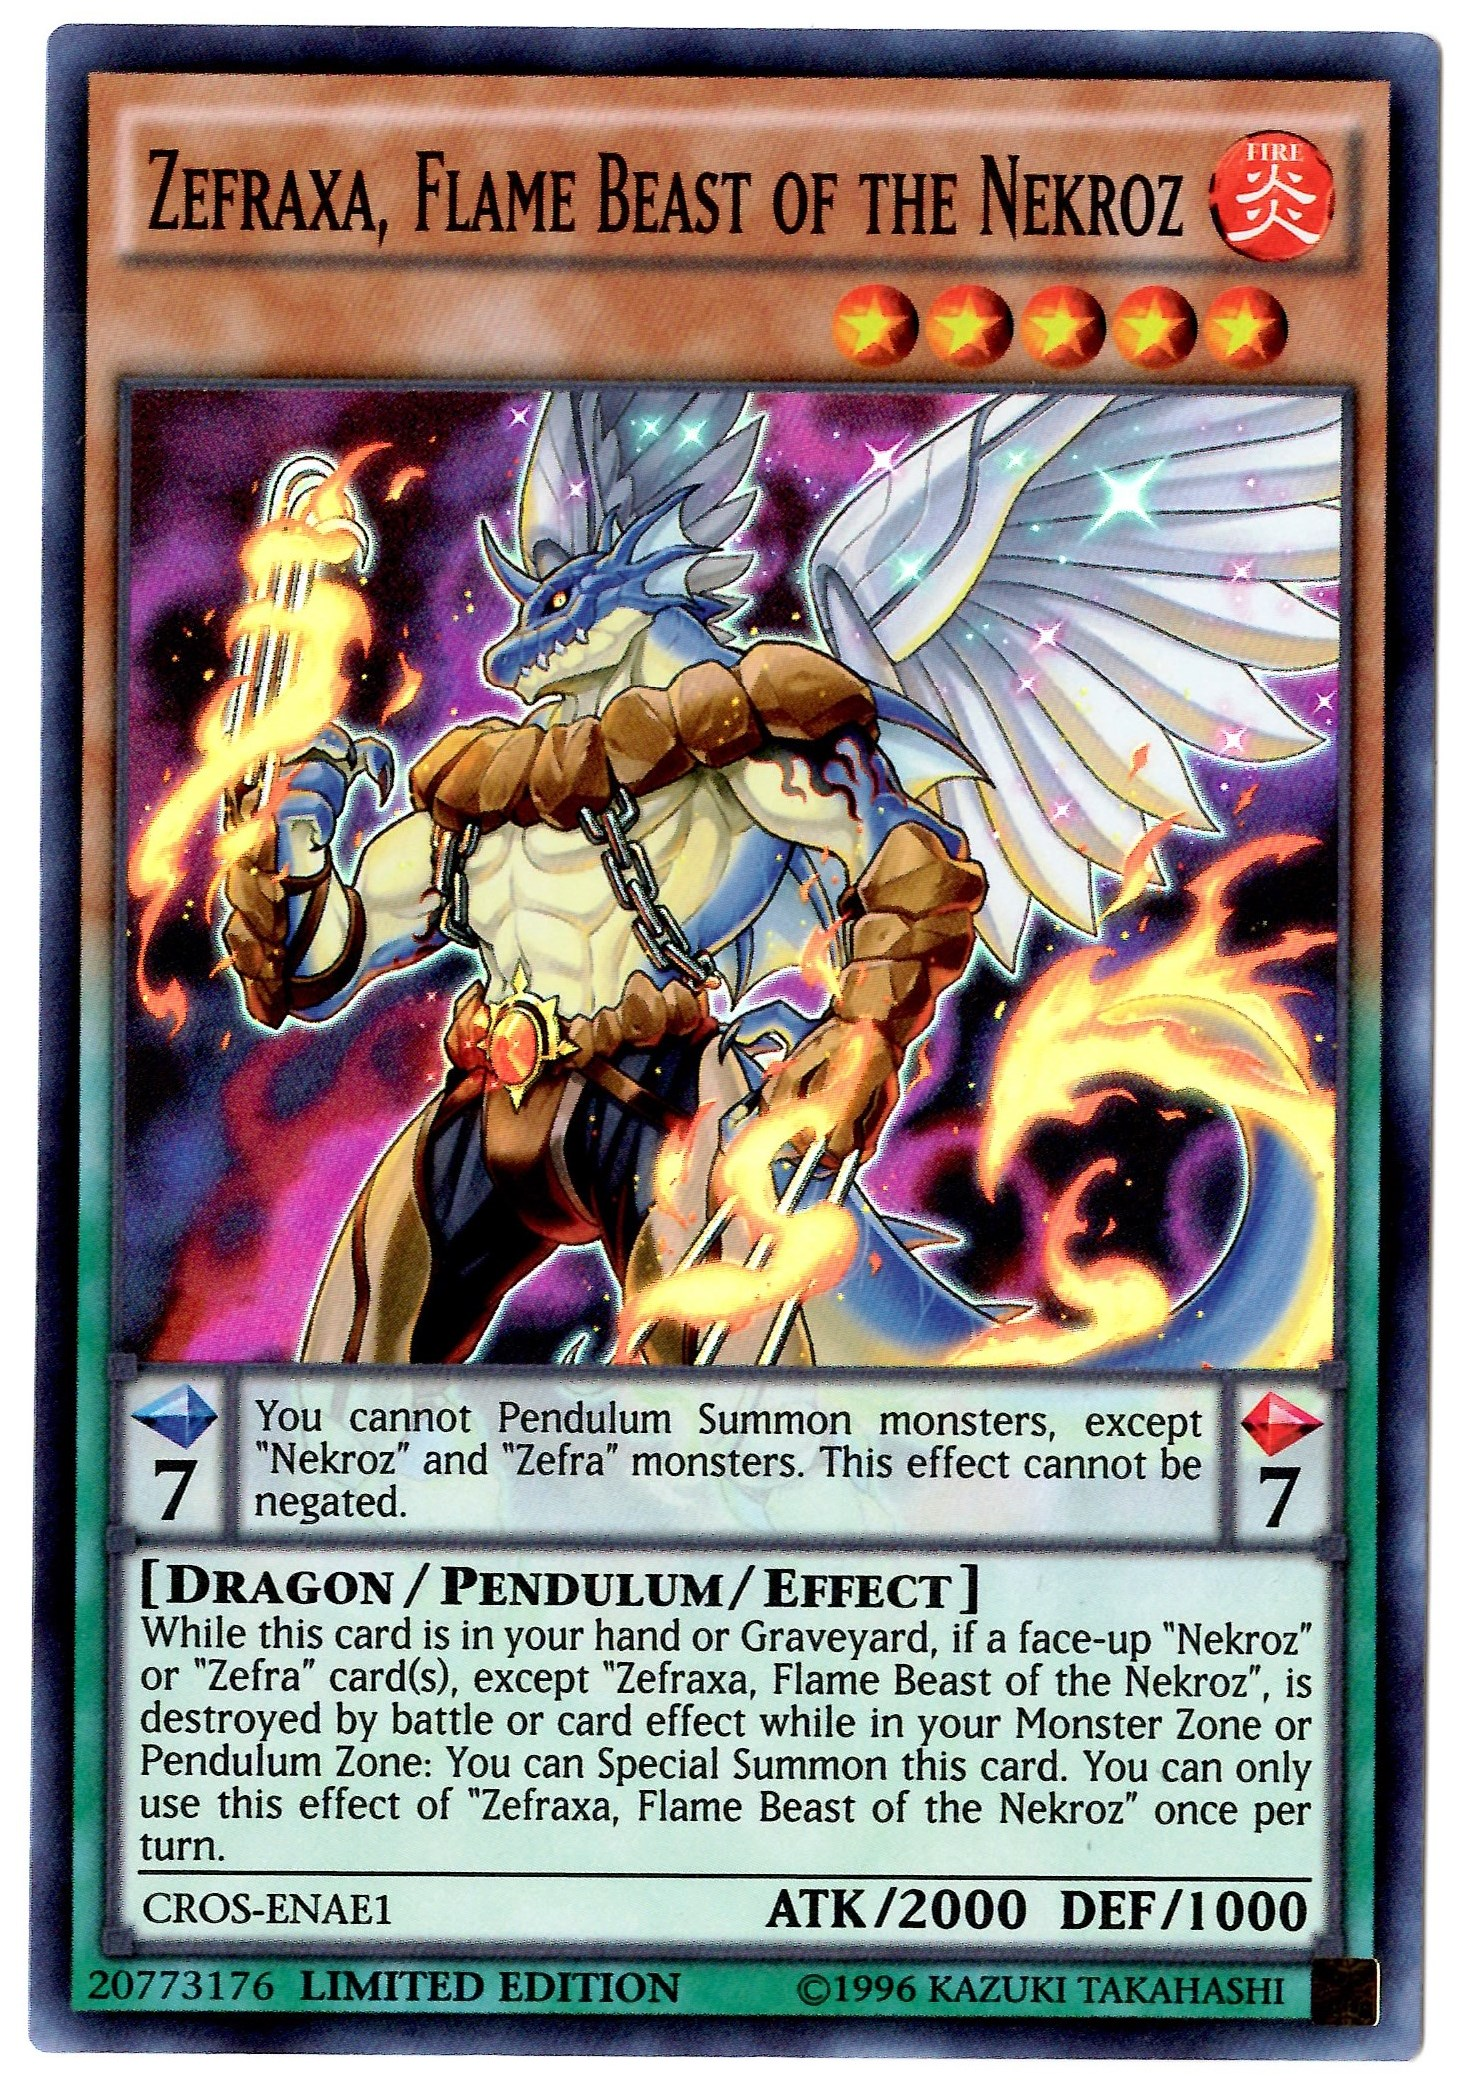 Zefraxa, Flame Beast of the Nekroz - CROS-ENAE1 - Super - Limited Edition